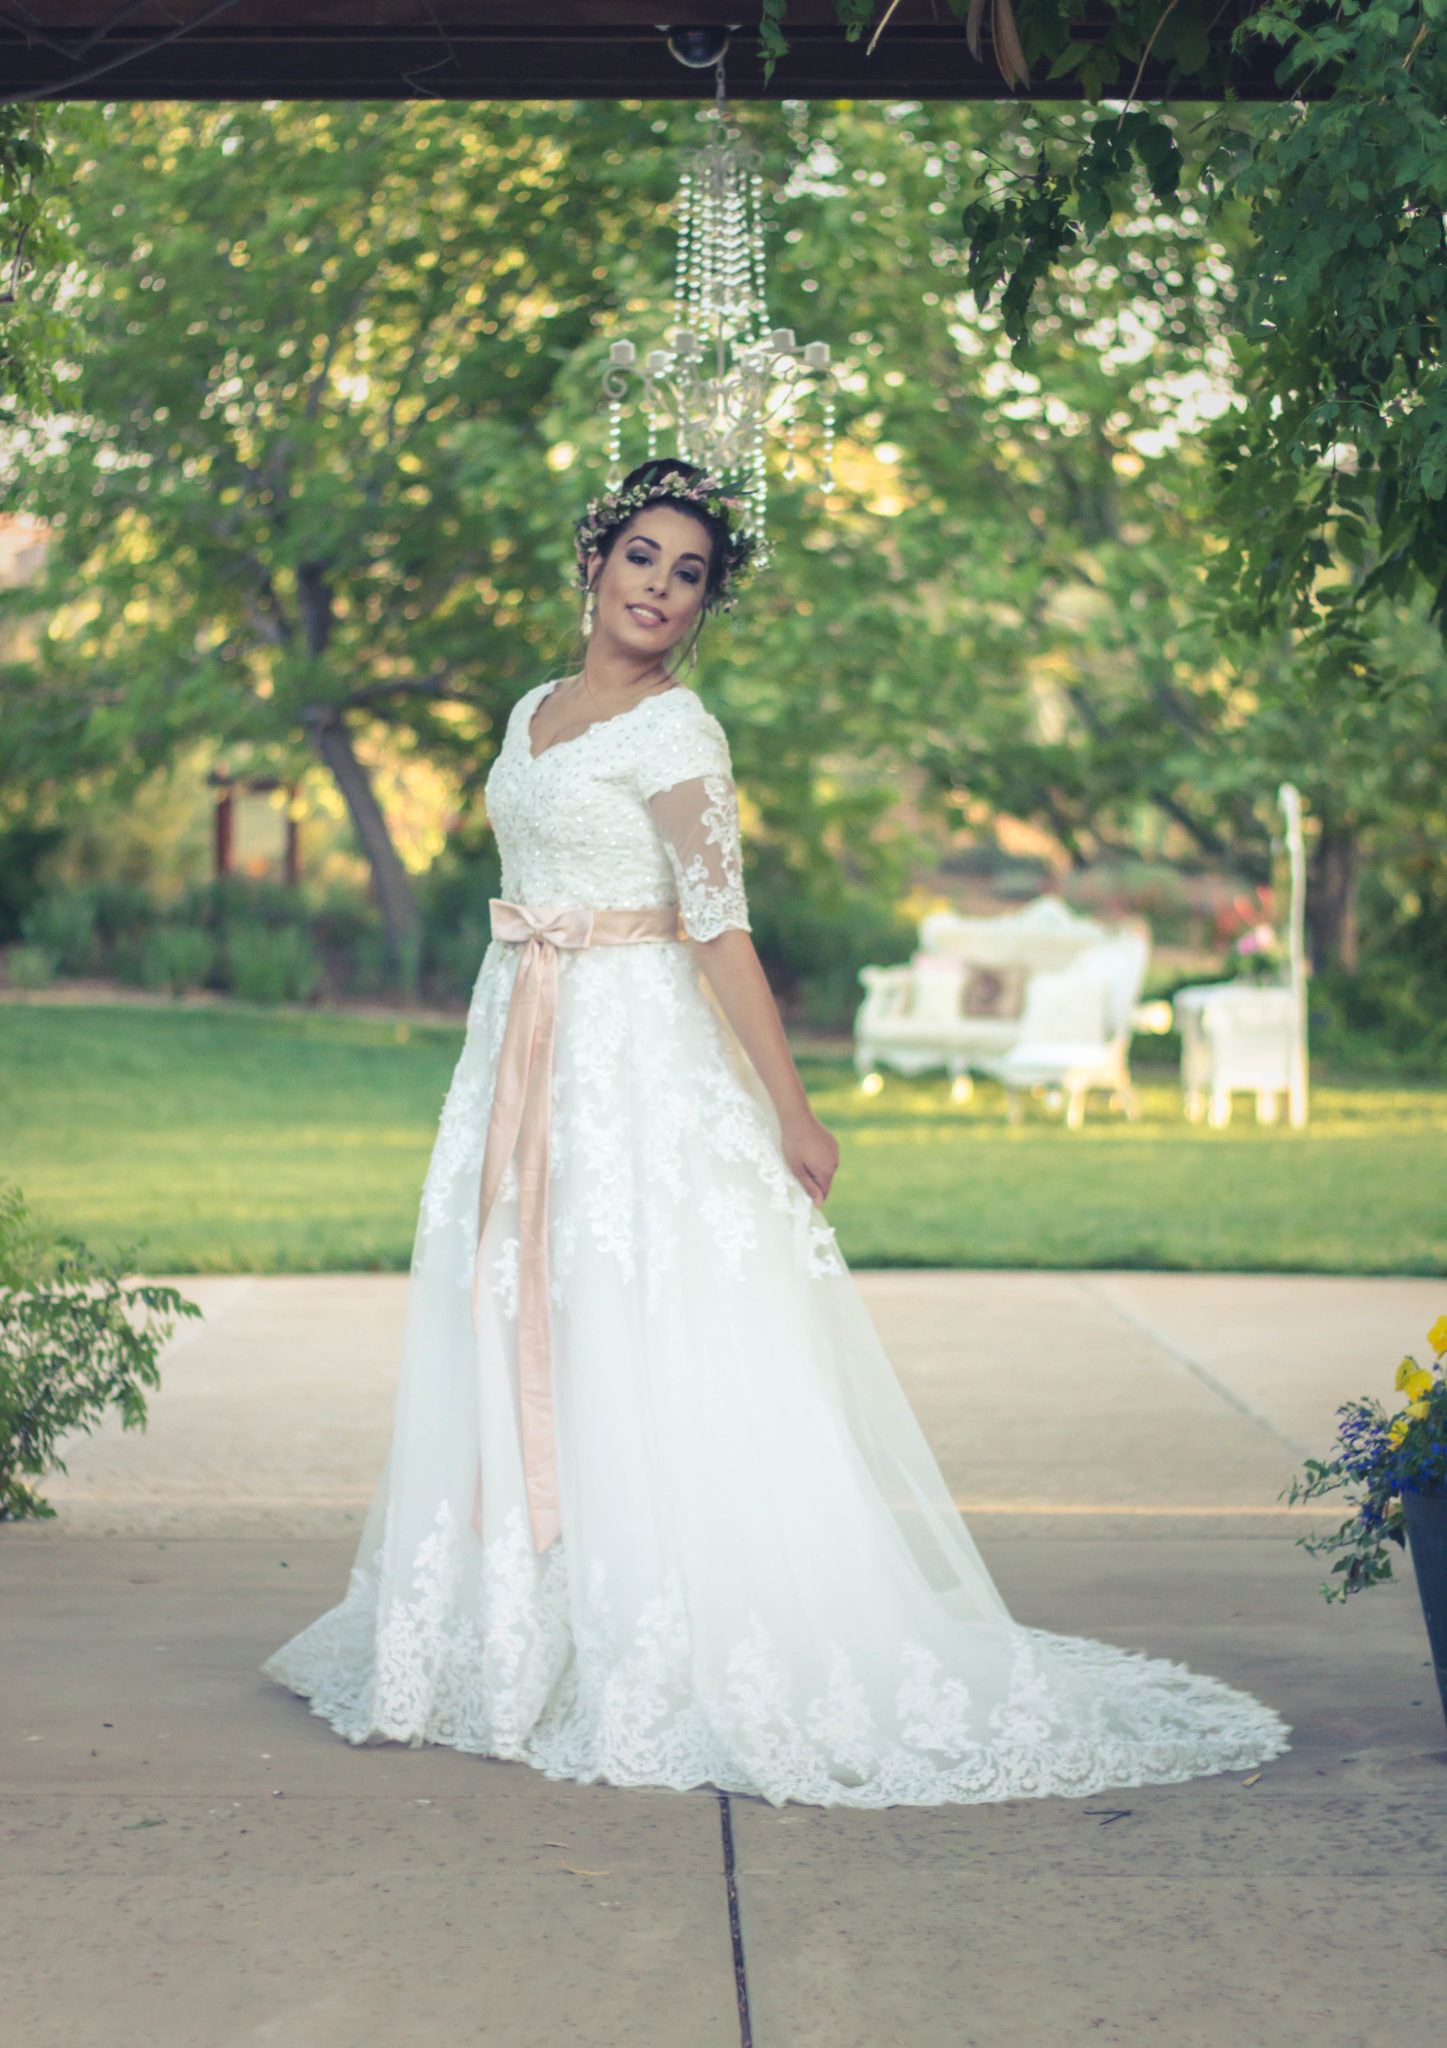 Wedding DressesGowns Get Your Affordable Custom Made Wedding Dress - Custom Made Wedding Dresses Near Me